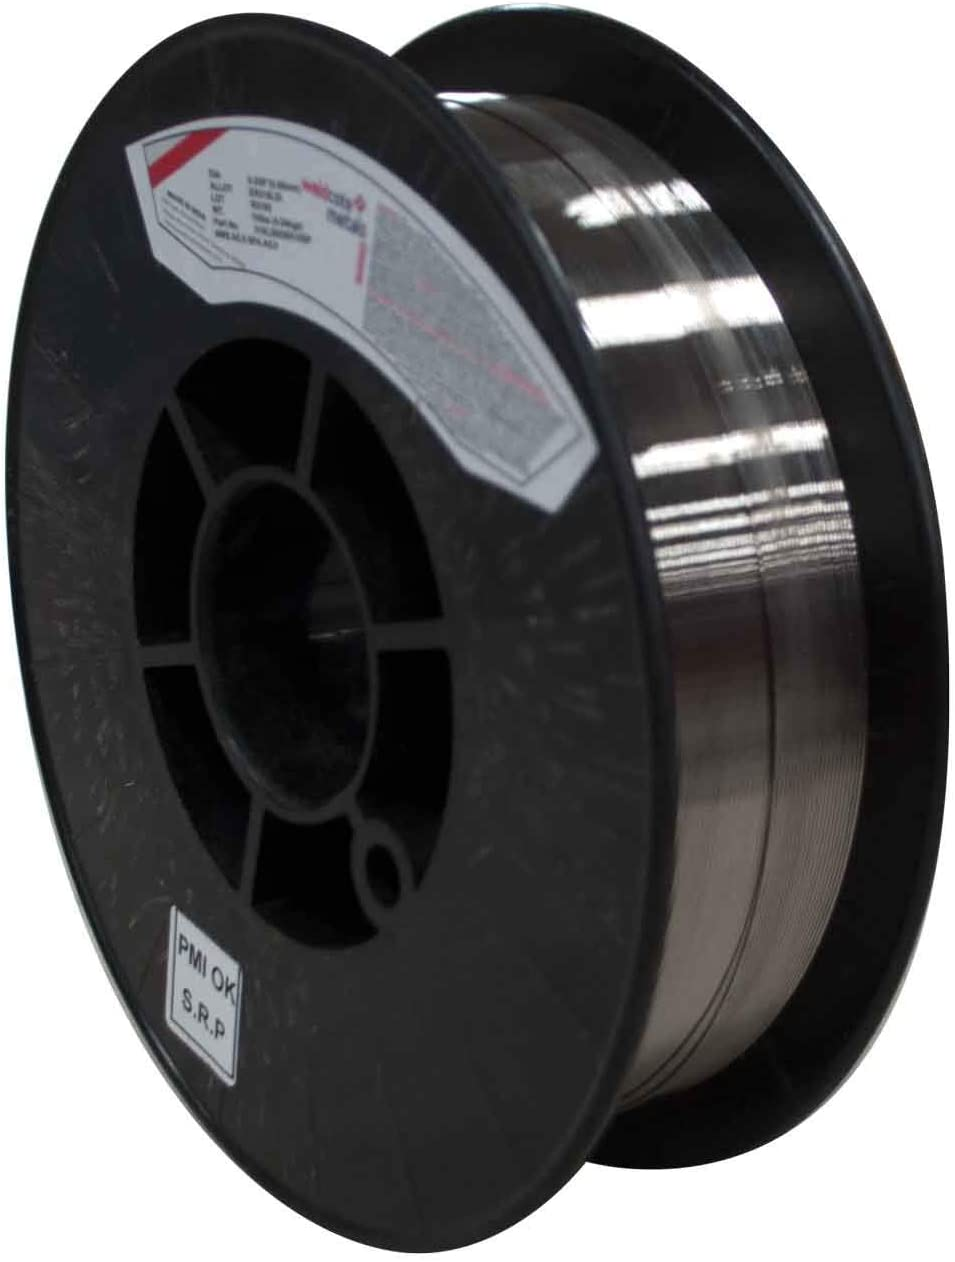 Weldcote Metals 308 LSI Stainless Welding Wire .035 X 10 Lb Spool